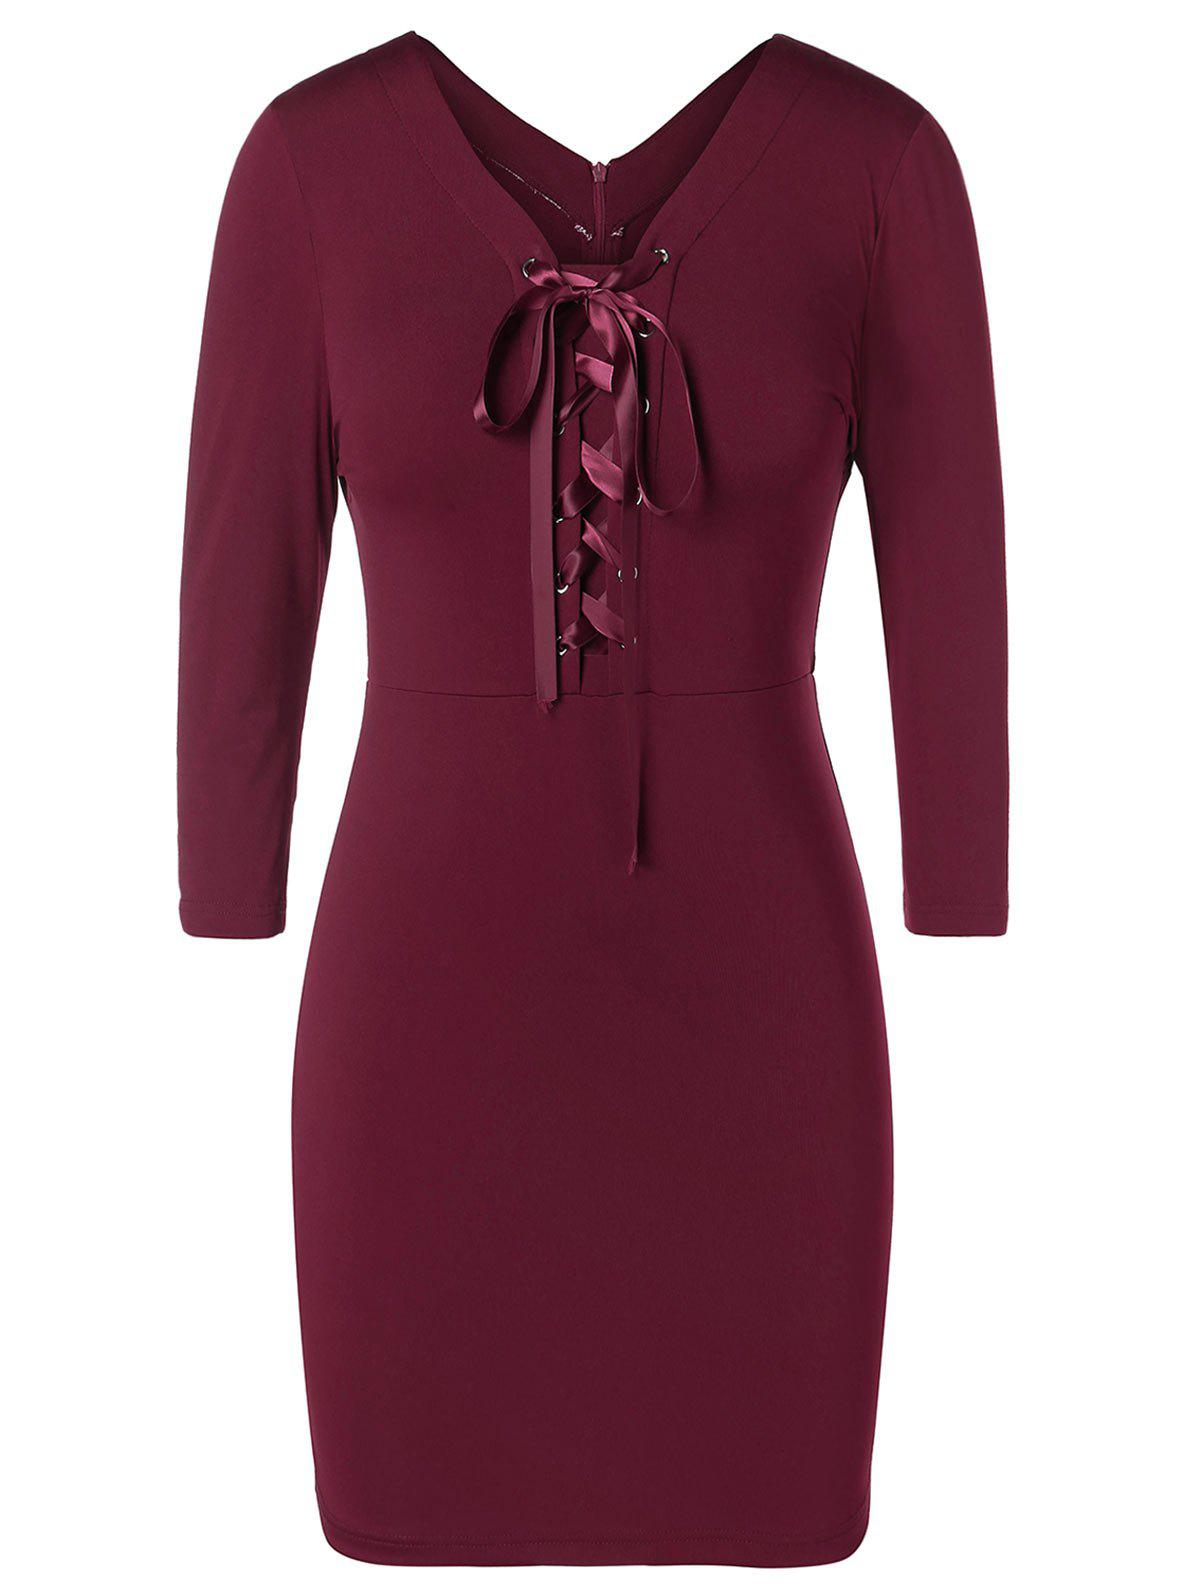 Plus Size Lace Up Pencil Dress